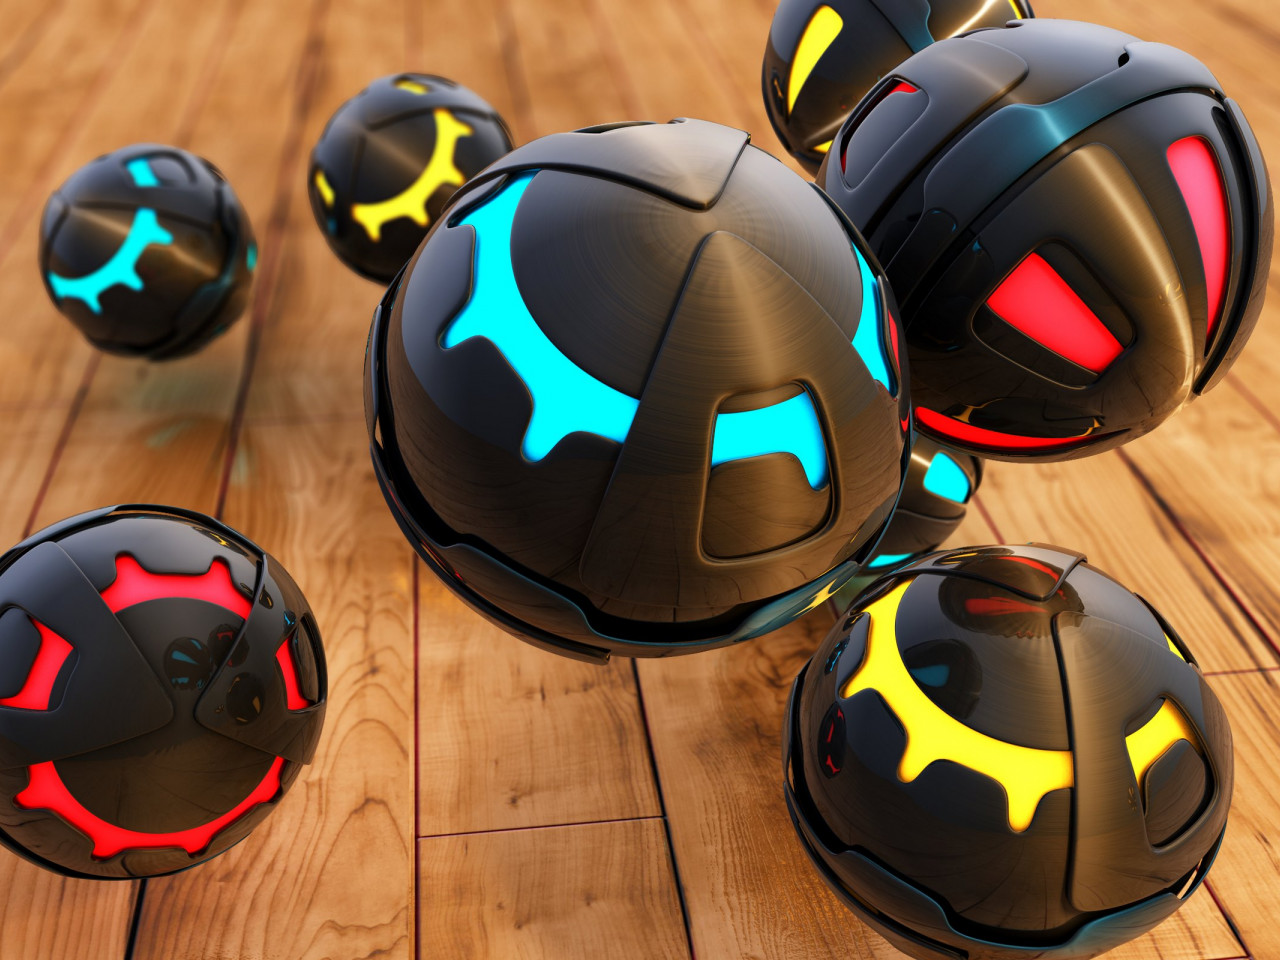 3D Spheres | 1280x960 wallpaper